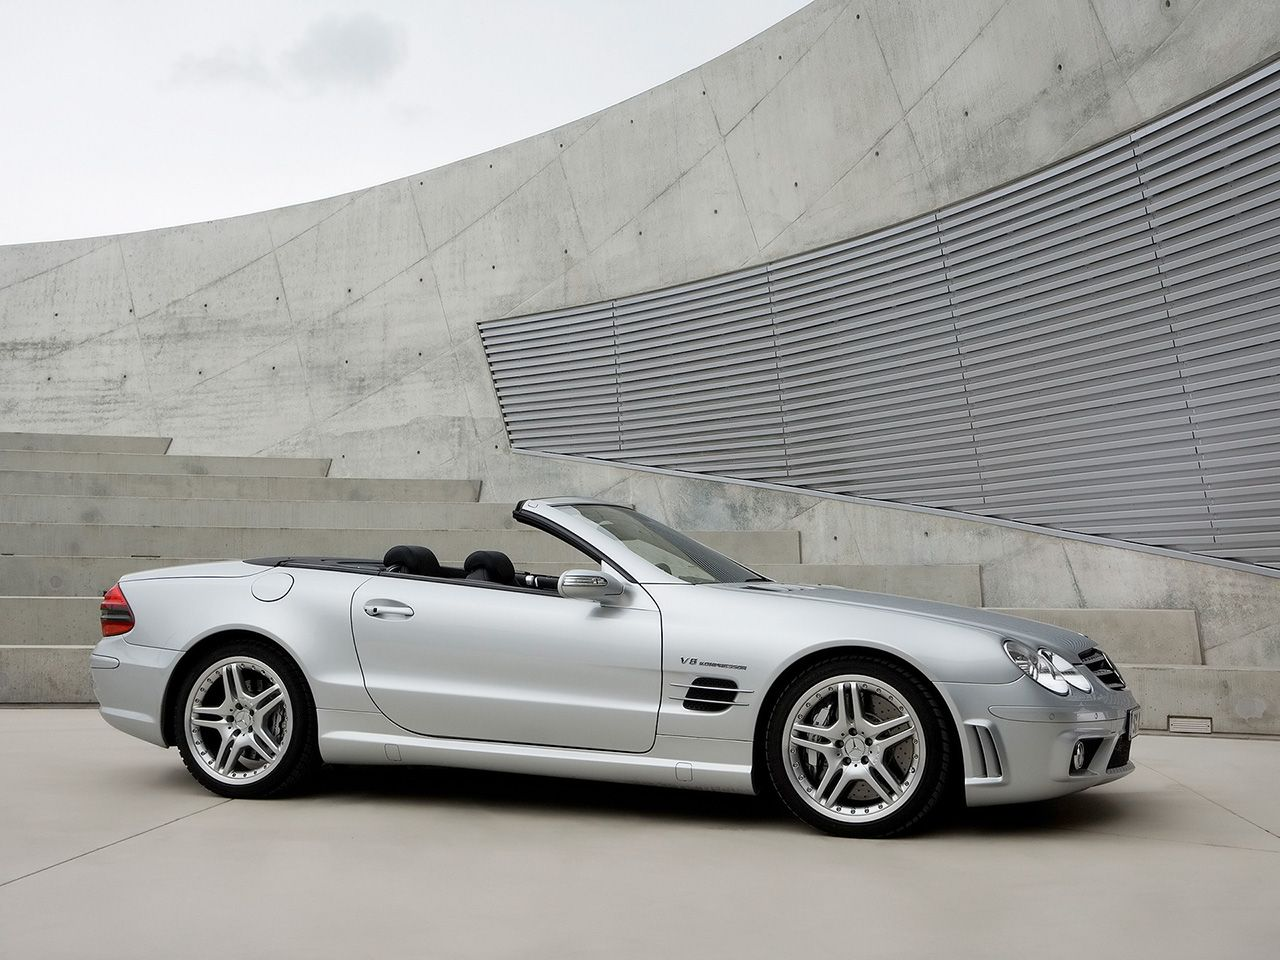 Mercedes Benz mercedes benz sl55 : Mercedes-Benz SL55 AMG Got mine picked out! Want to know how you ...